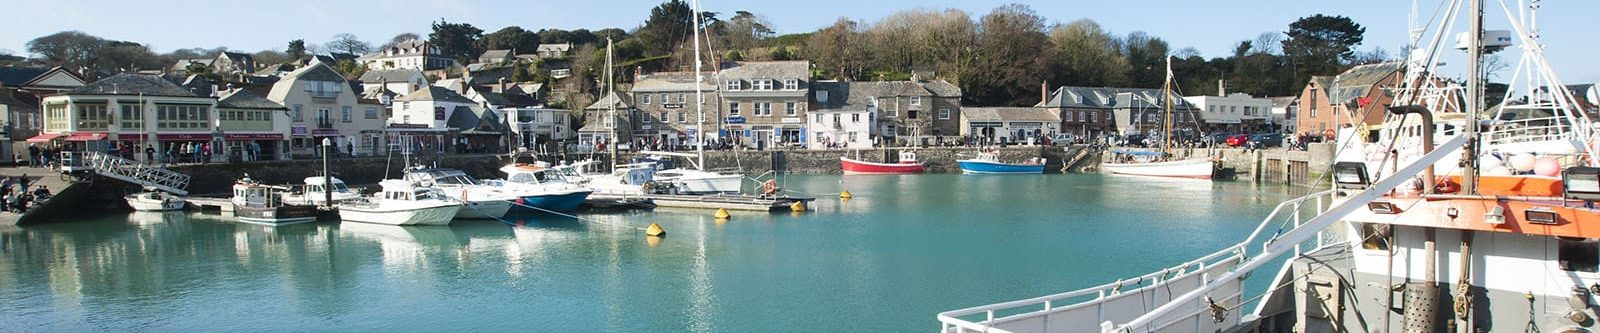 fishing boats in Padstow